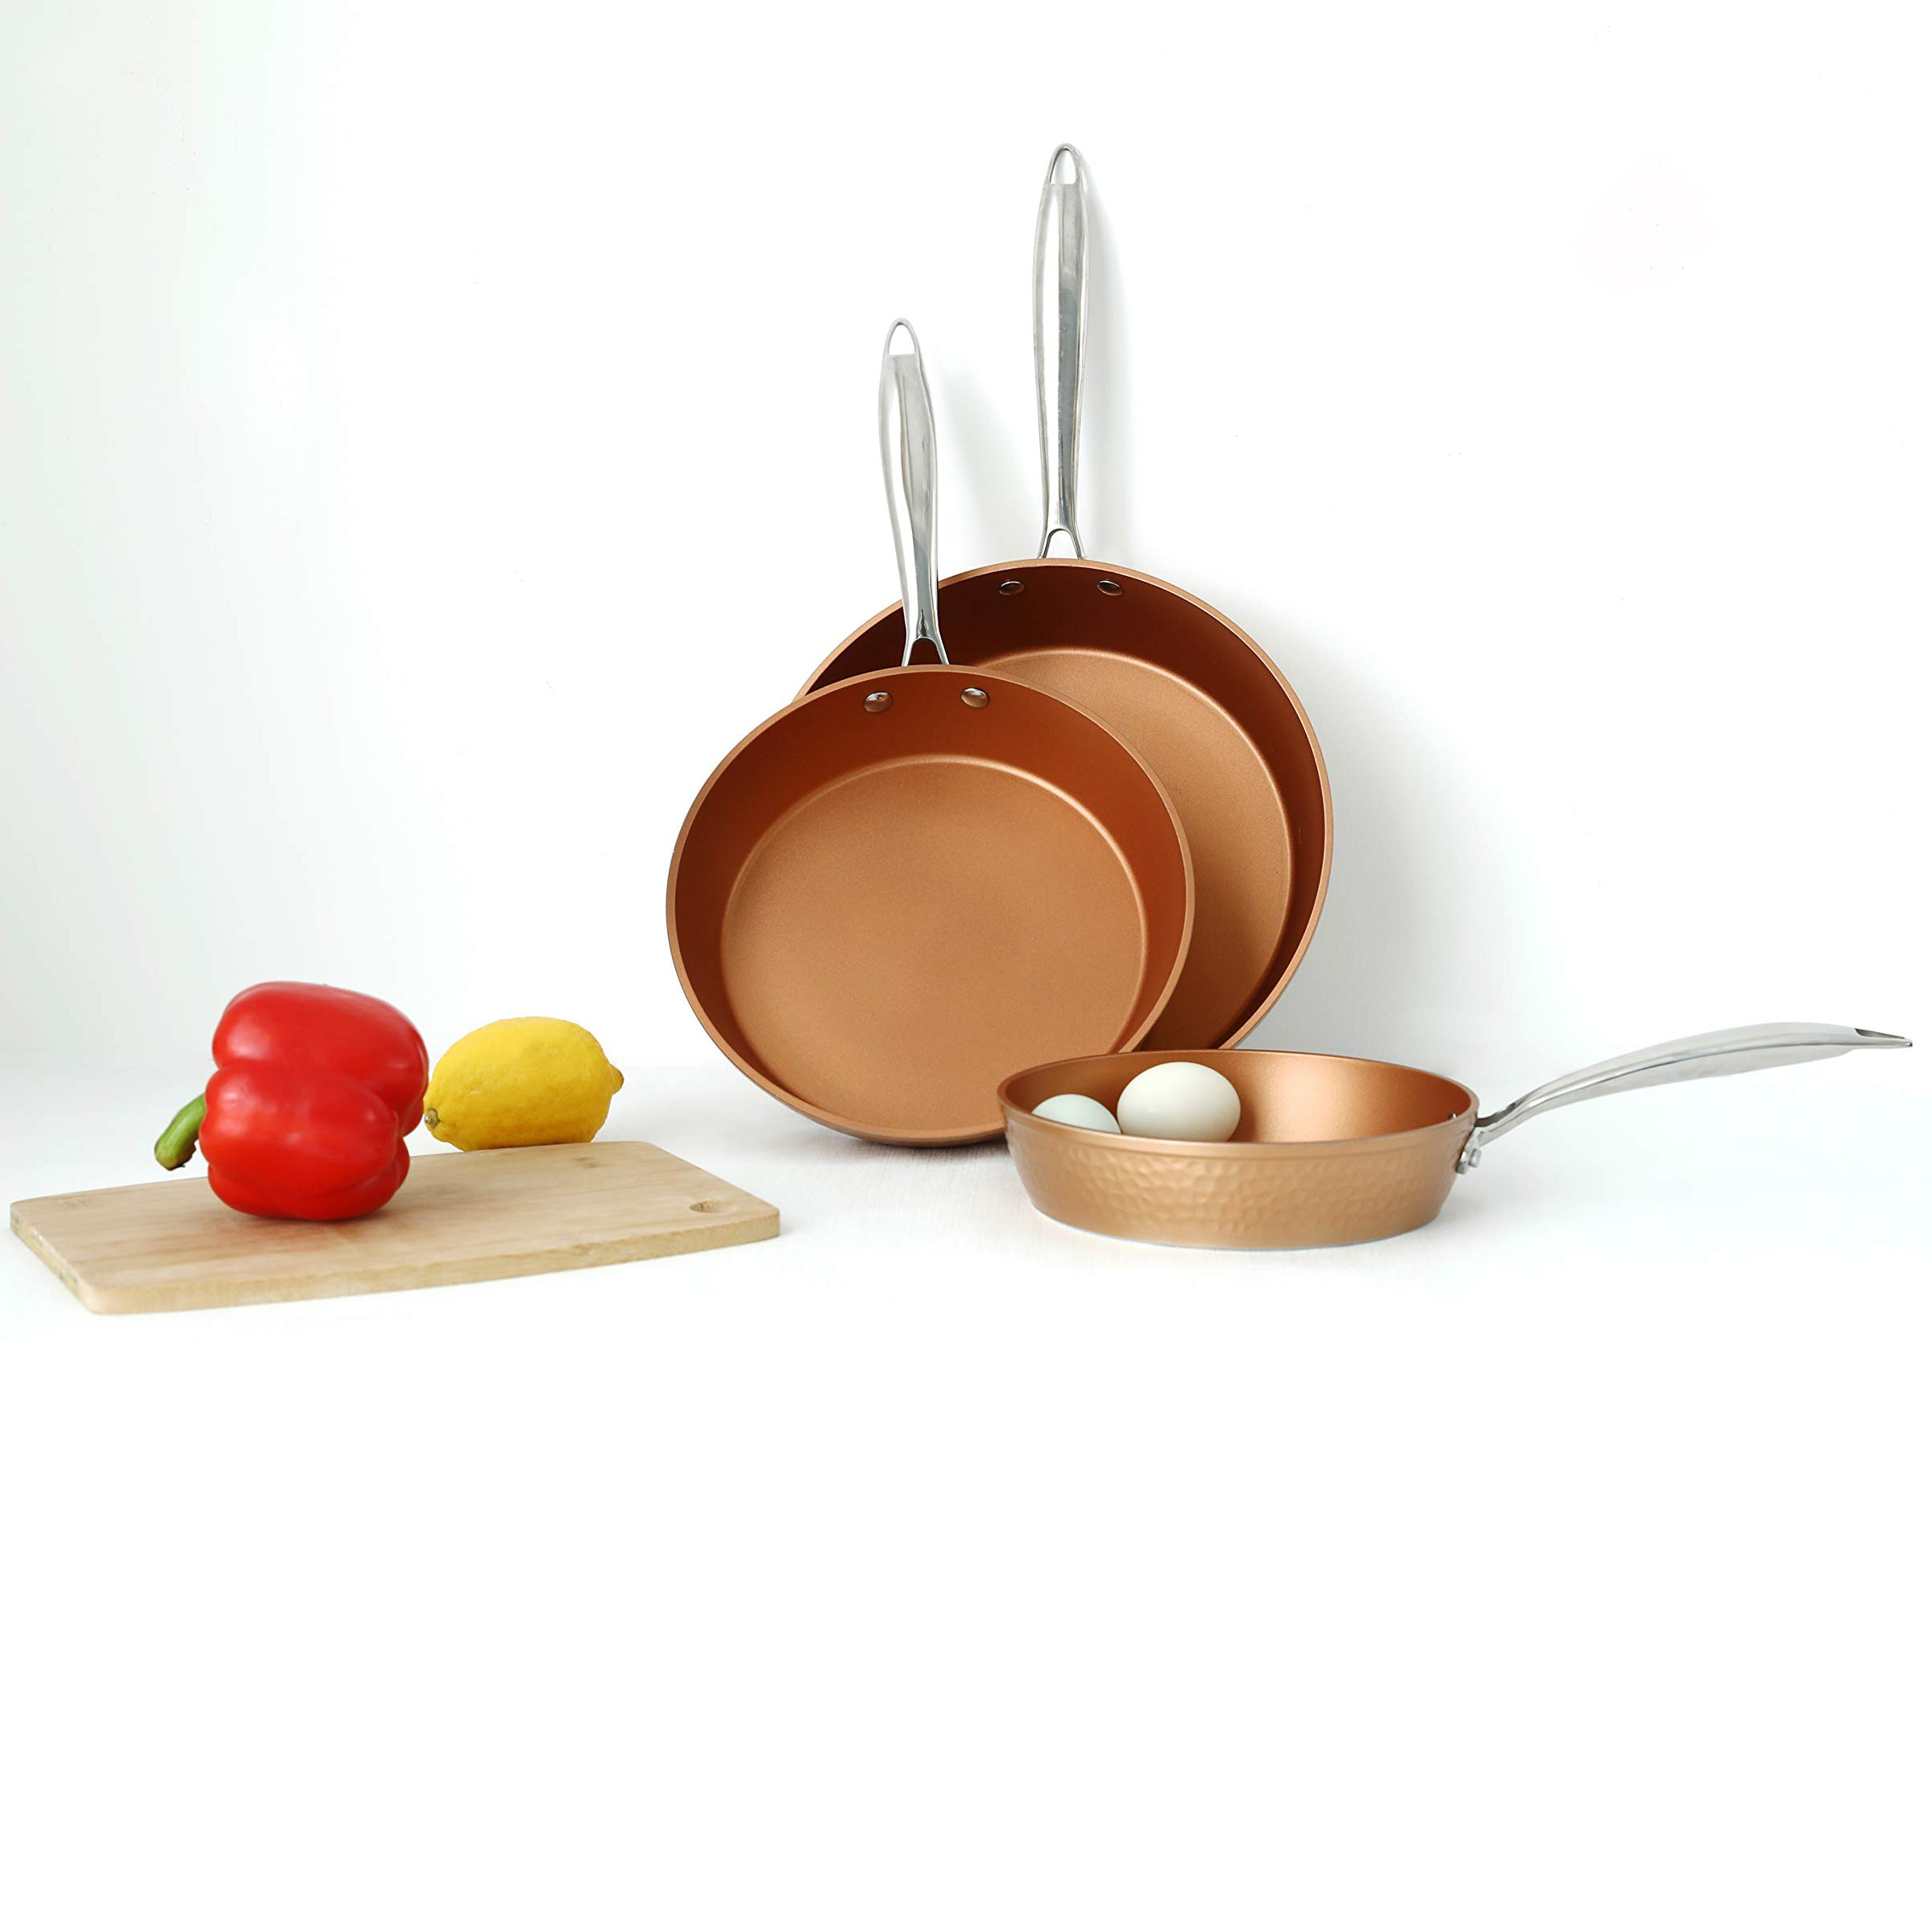 Alphamarts coupon: Kitchen Academy Red Copper Hammered Induction Cookware Set Nonstick 3 Piece-Hammered